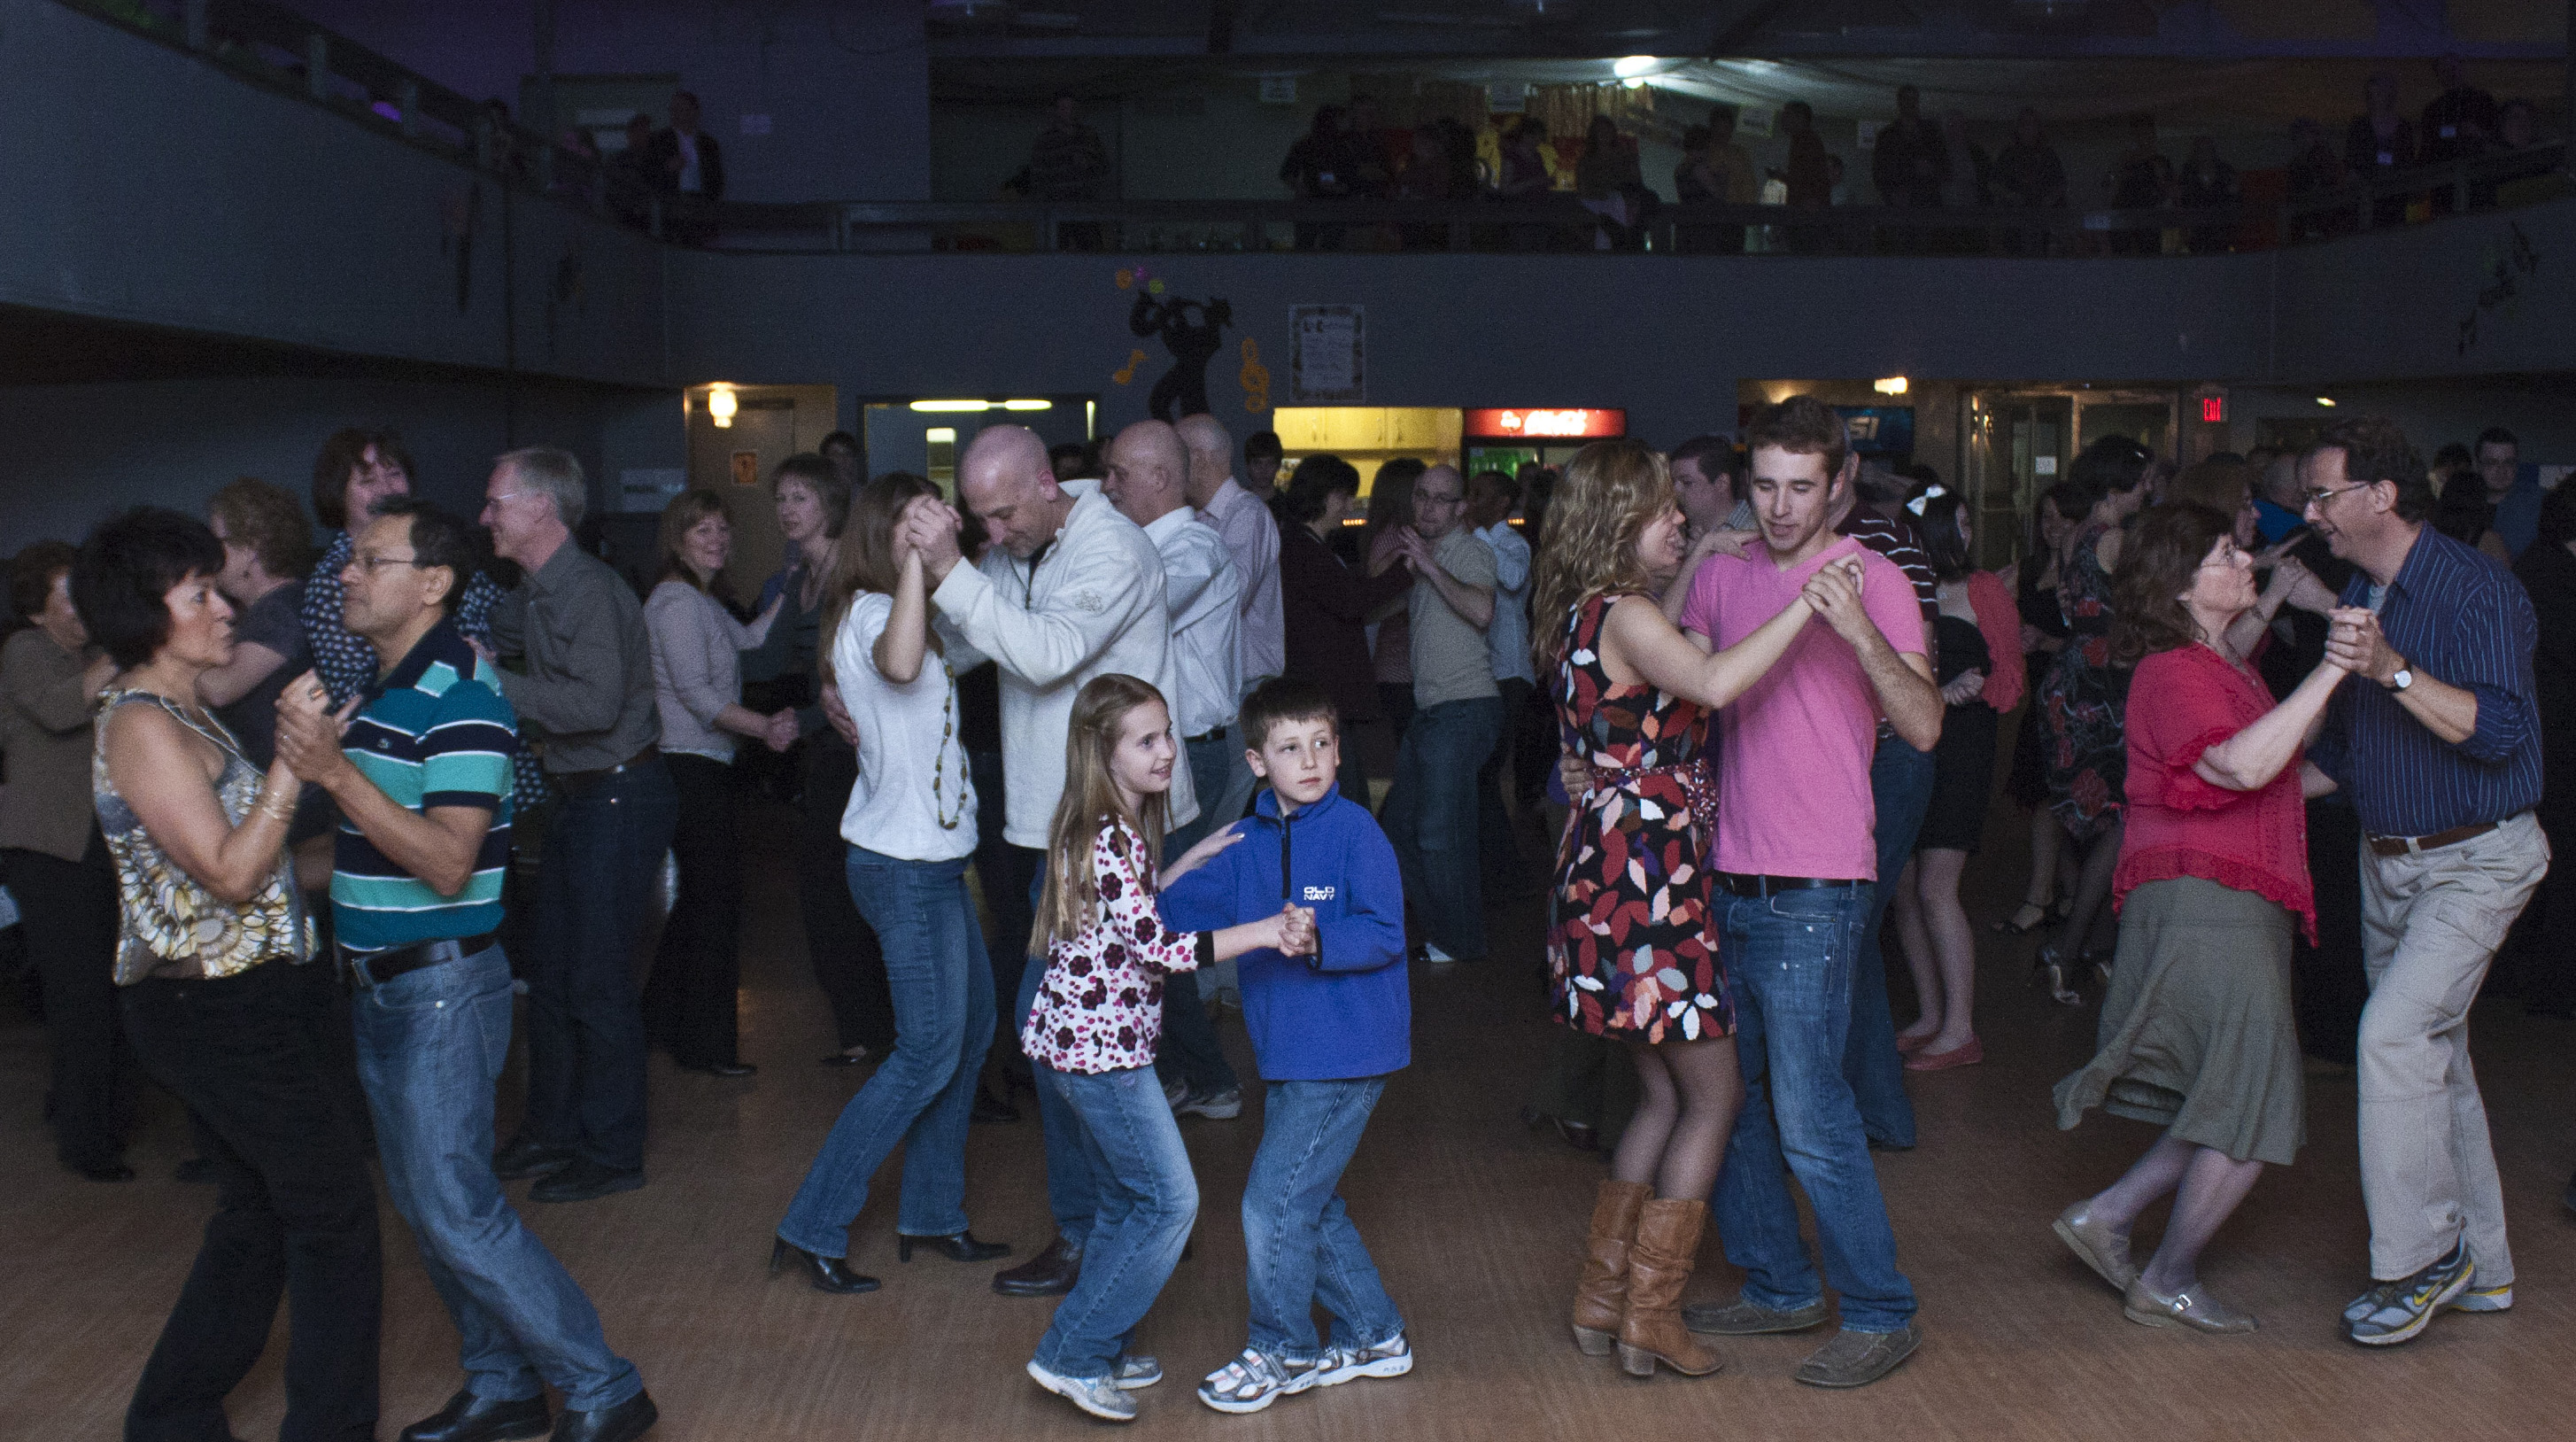 All Ages Dancing